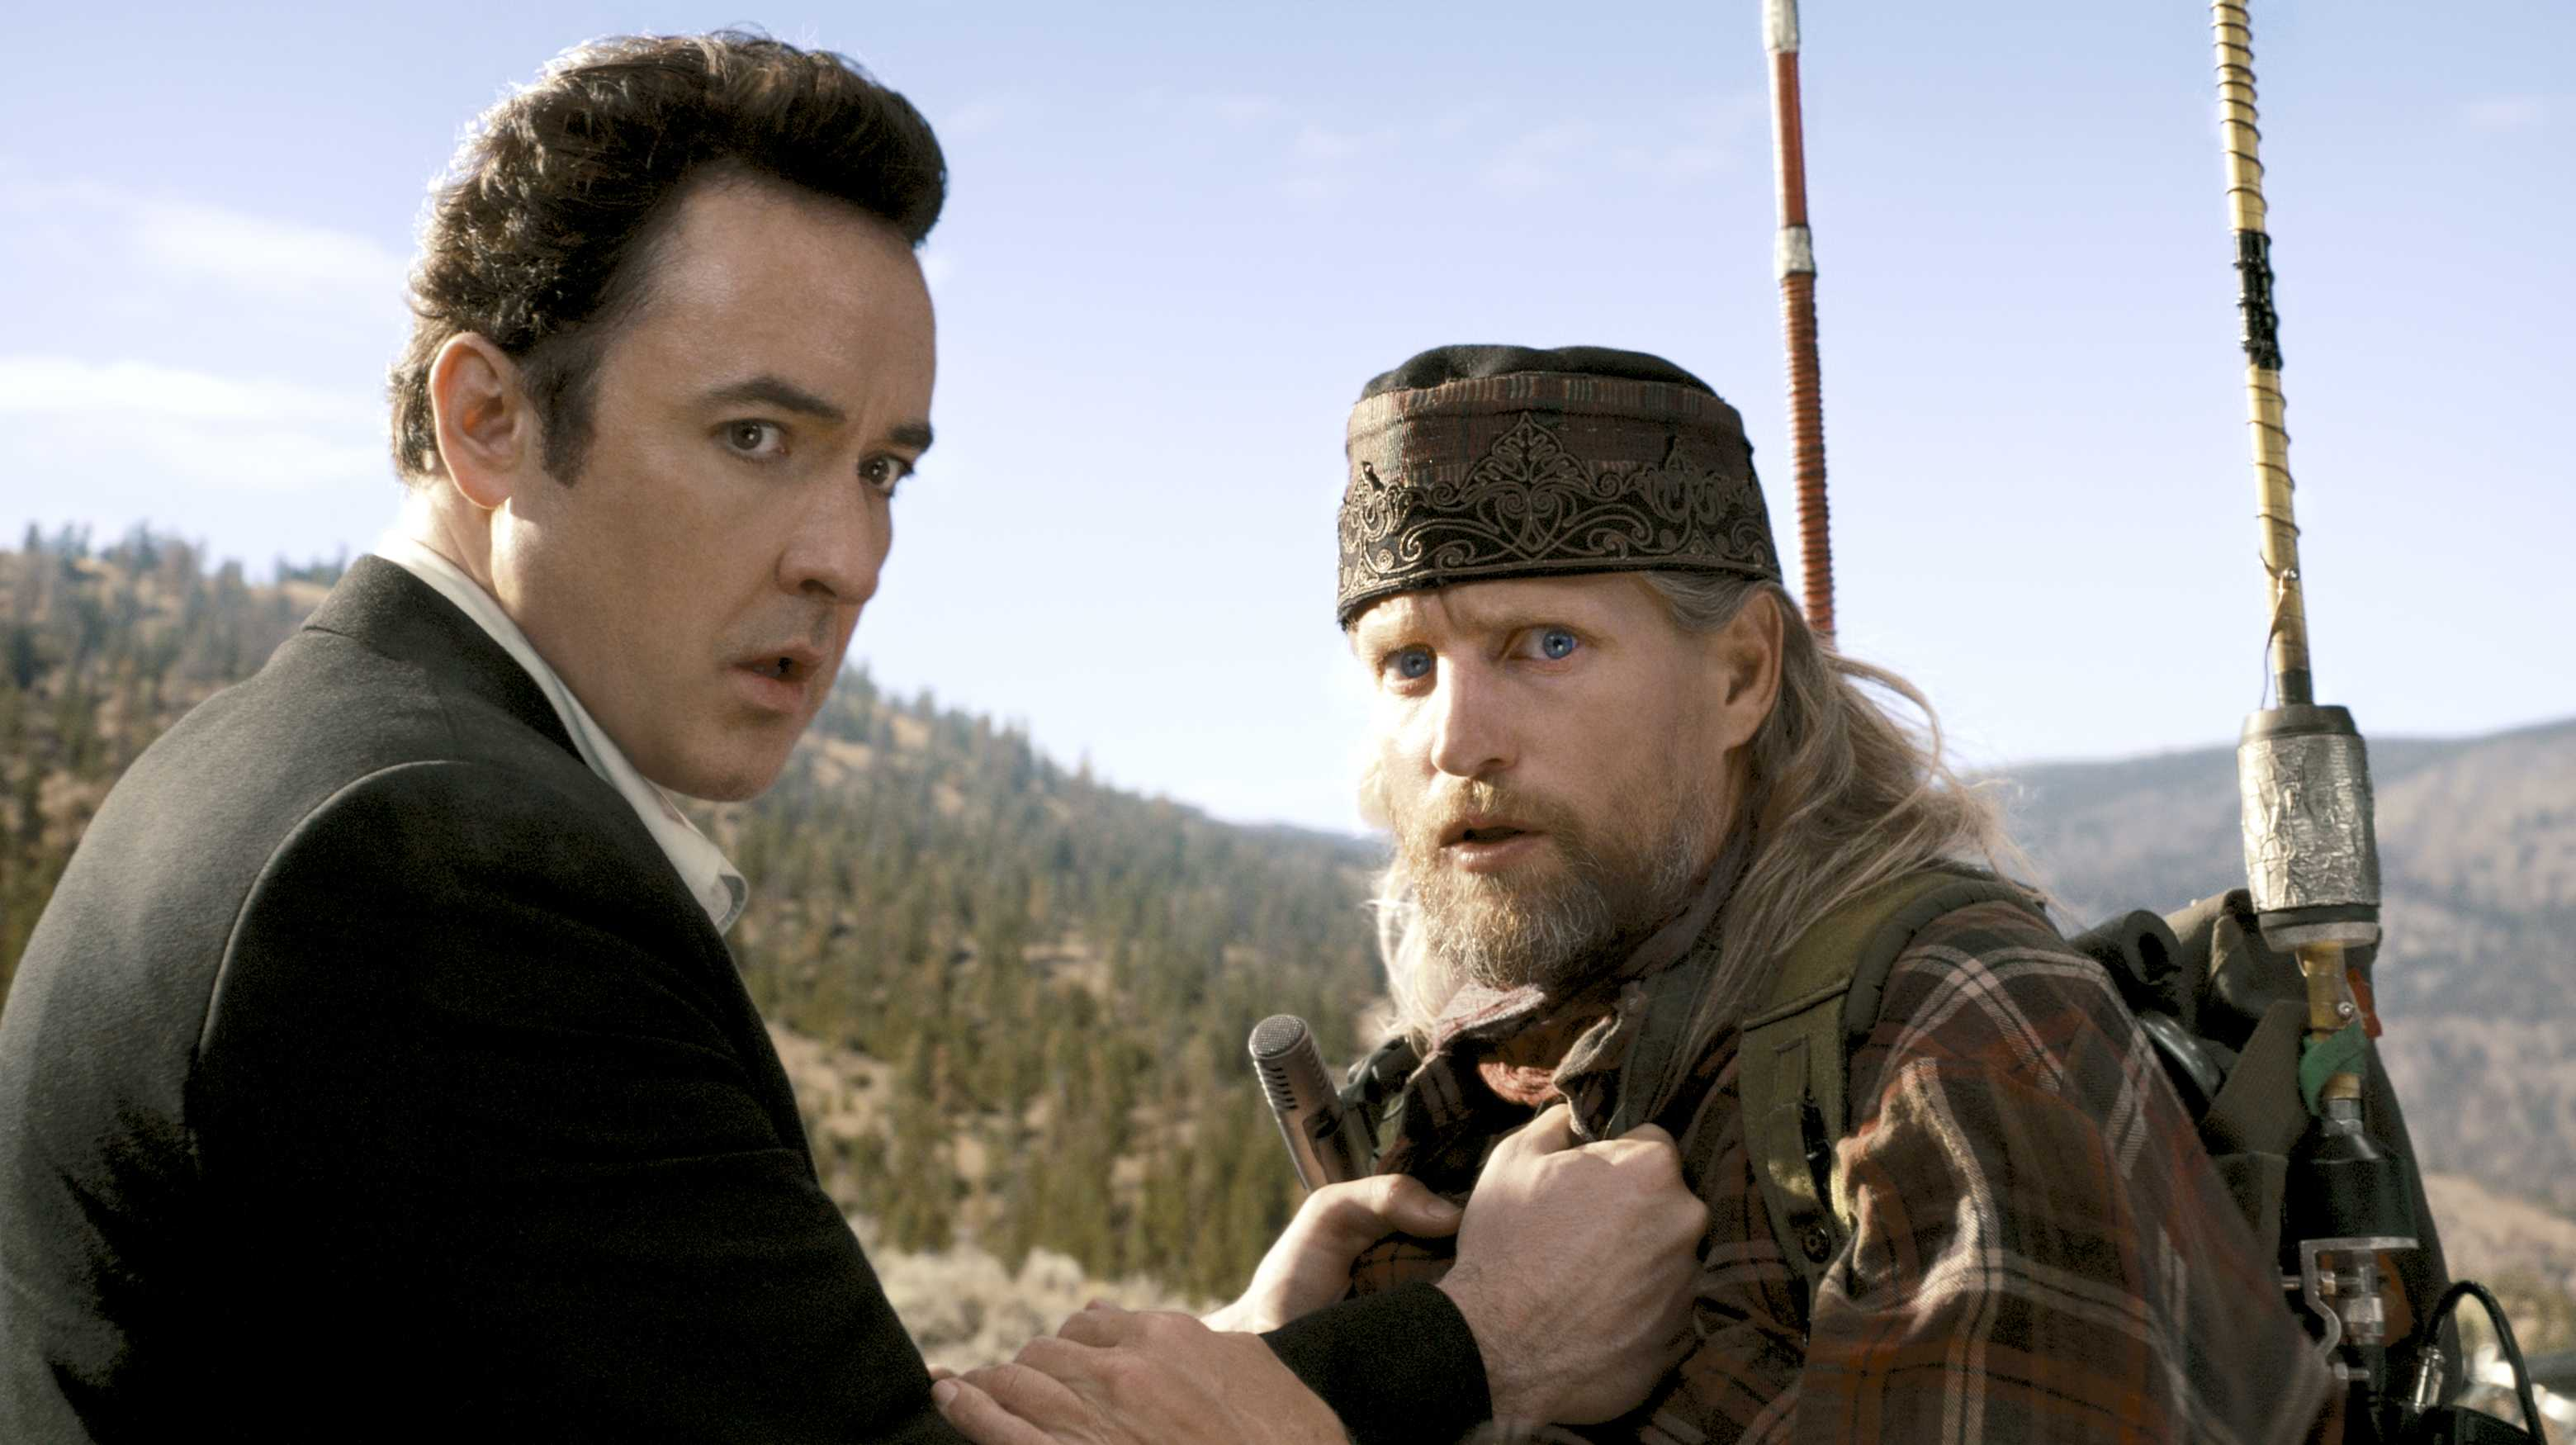 Science-fiction writer John Cusack and crackpot radio talkback host Woody Harrelson in 2012 (2009)